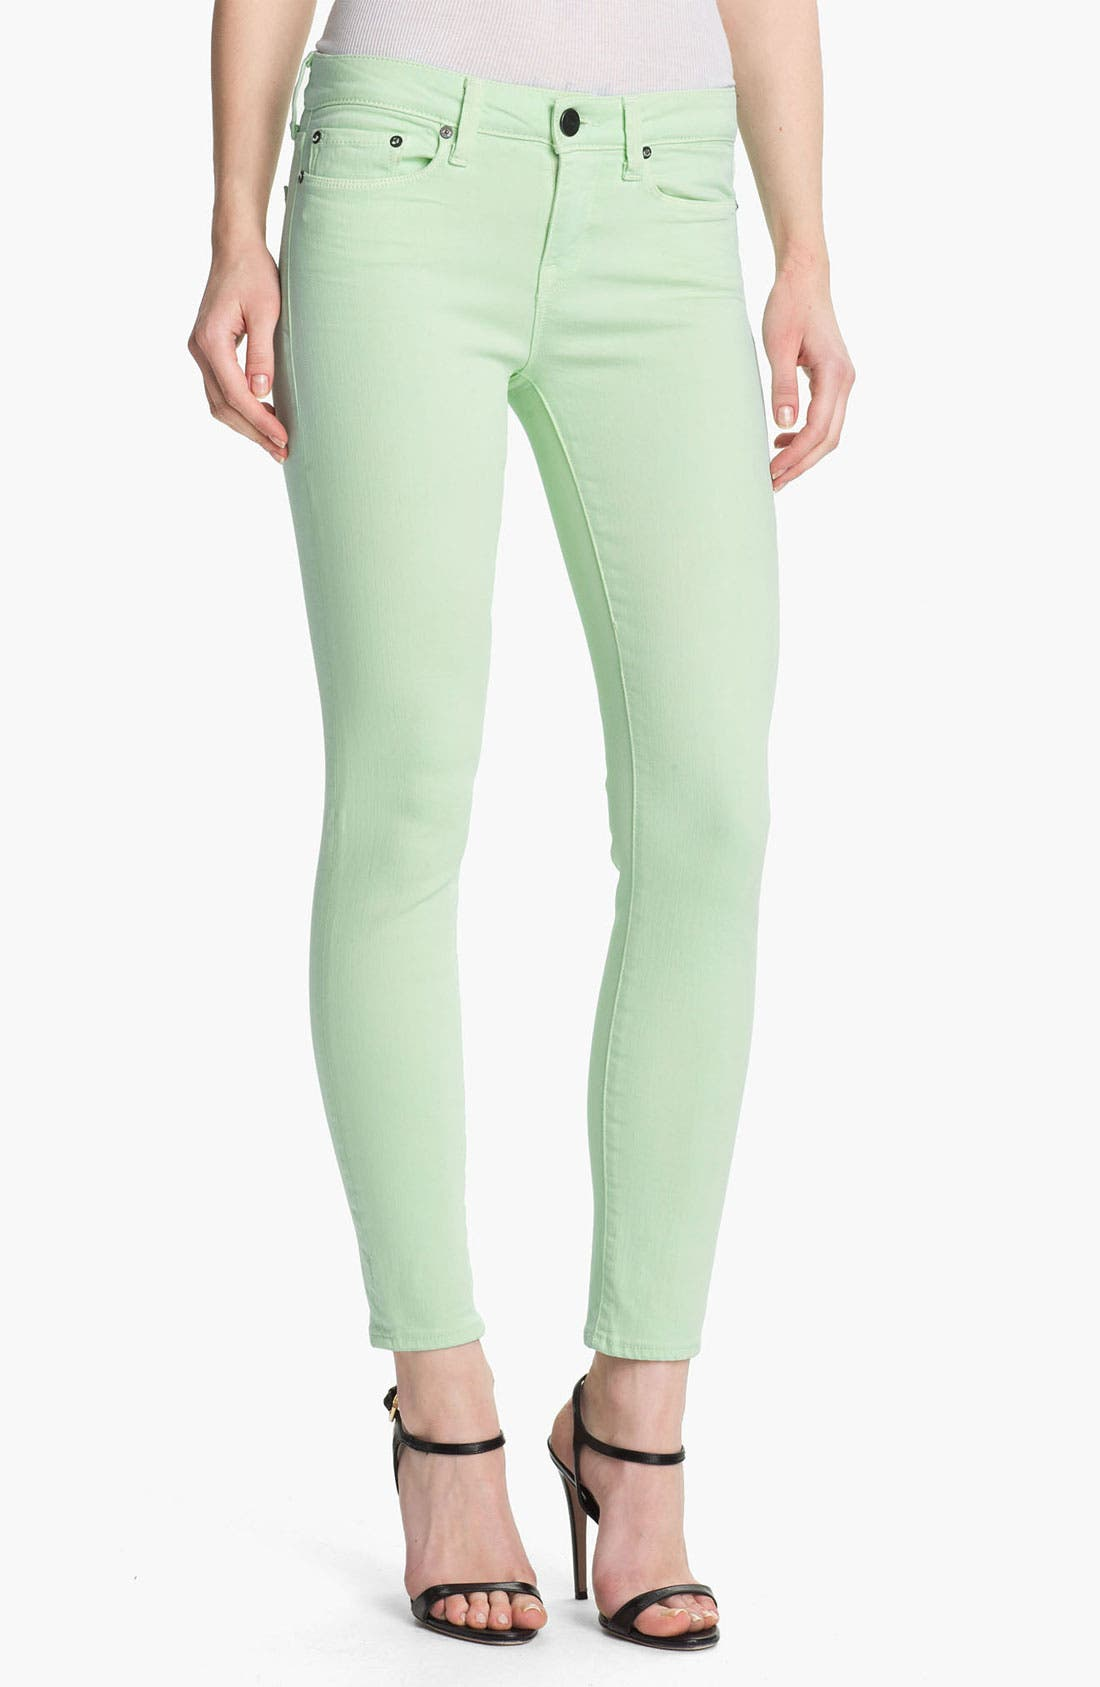 Main Image - Vince Colored Skinny Stretch Ankle Jeans (Light Mint)